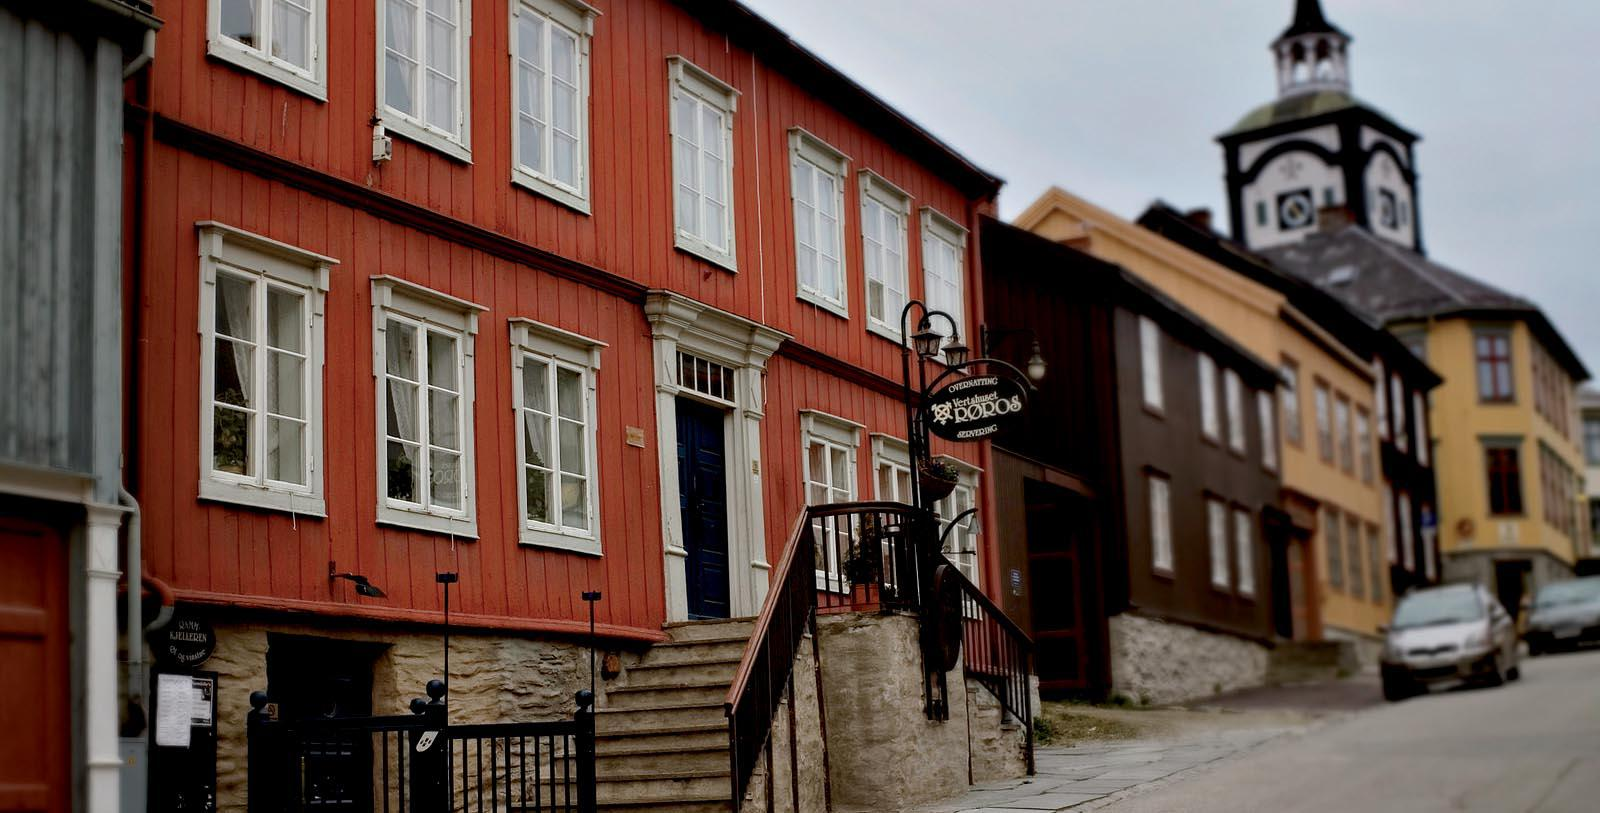 Image of Hotel Exterior Vertshuset Røros, 1844, Member of Historic Hotels Worldwide, in Røros, Norway, Special Offers, Discounted Rates, Families, Romantic Escape, Honeymoons, Anniversaries, Reunions